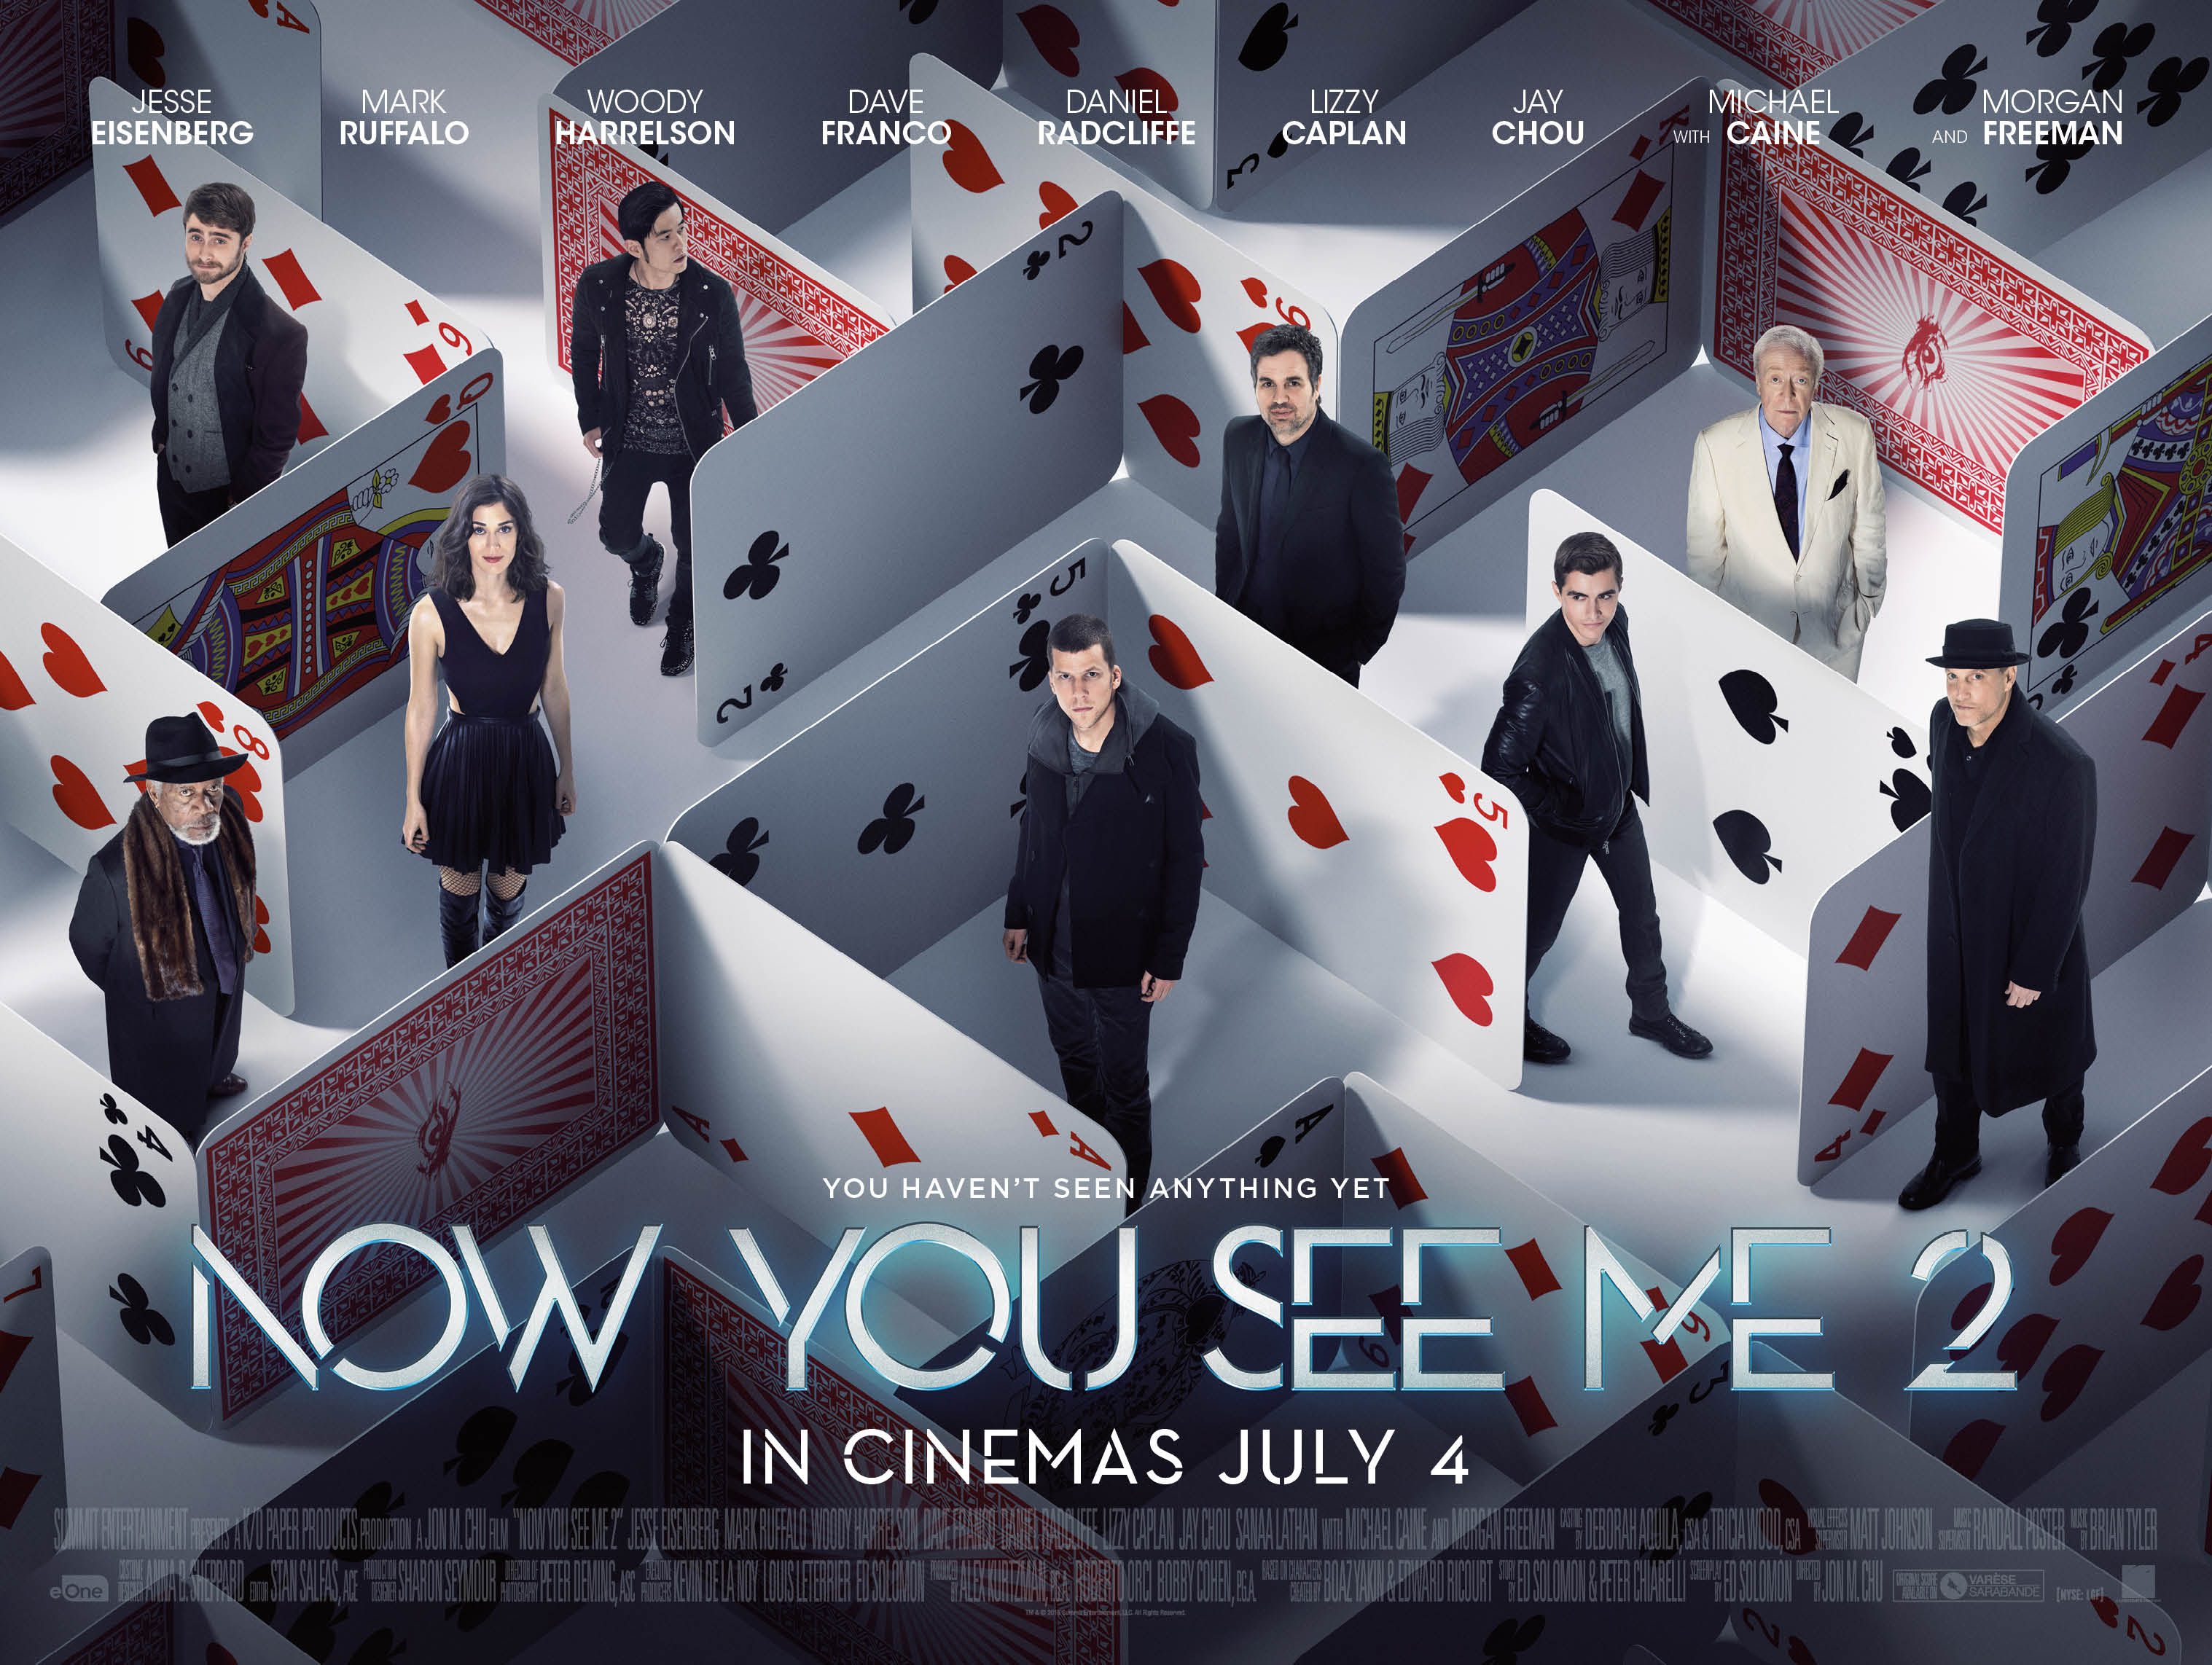 now you can see me 1 full movie online free